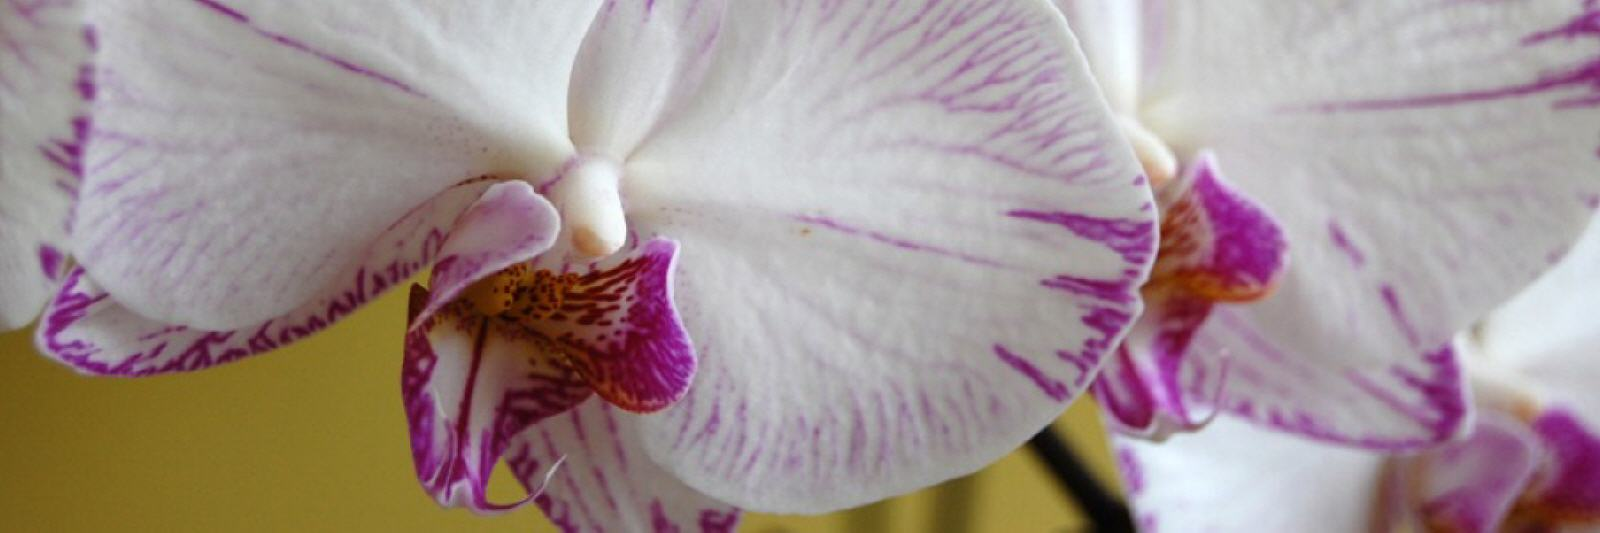 Orchids how to look after them-3395